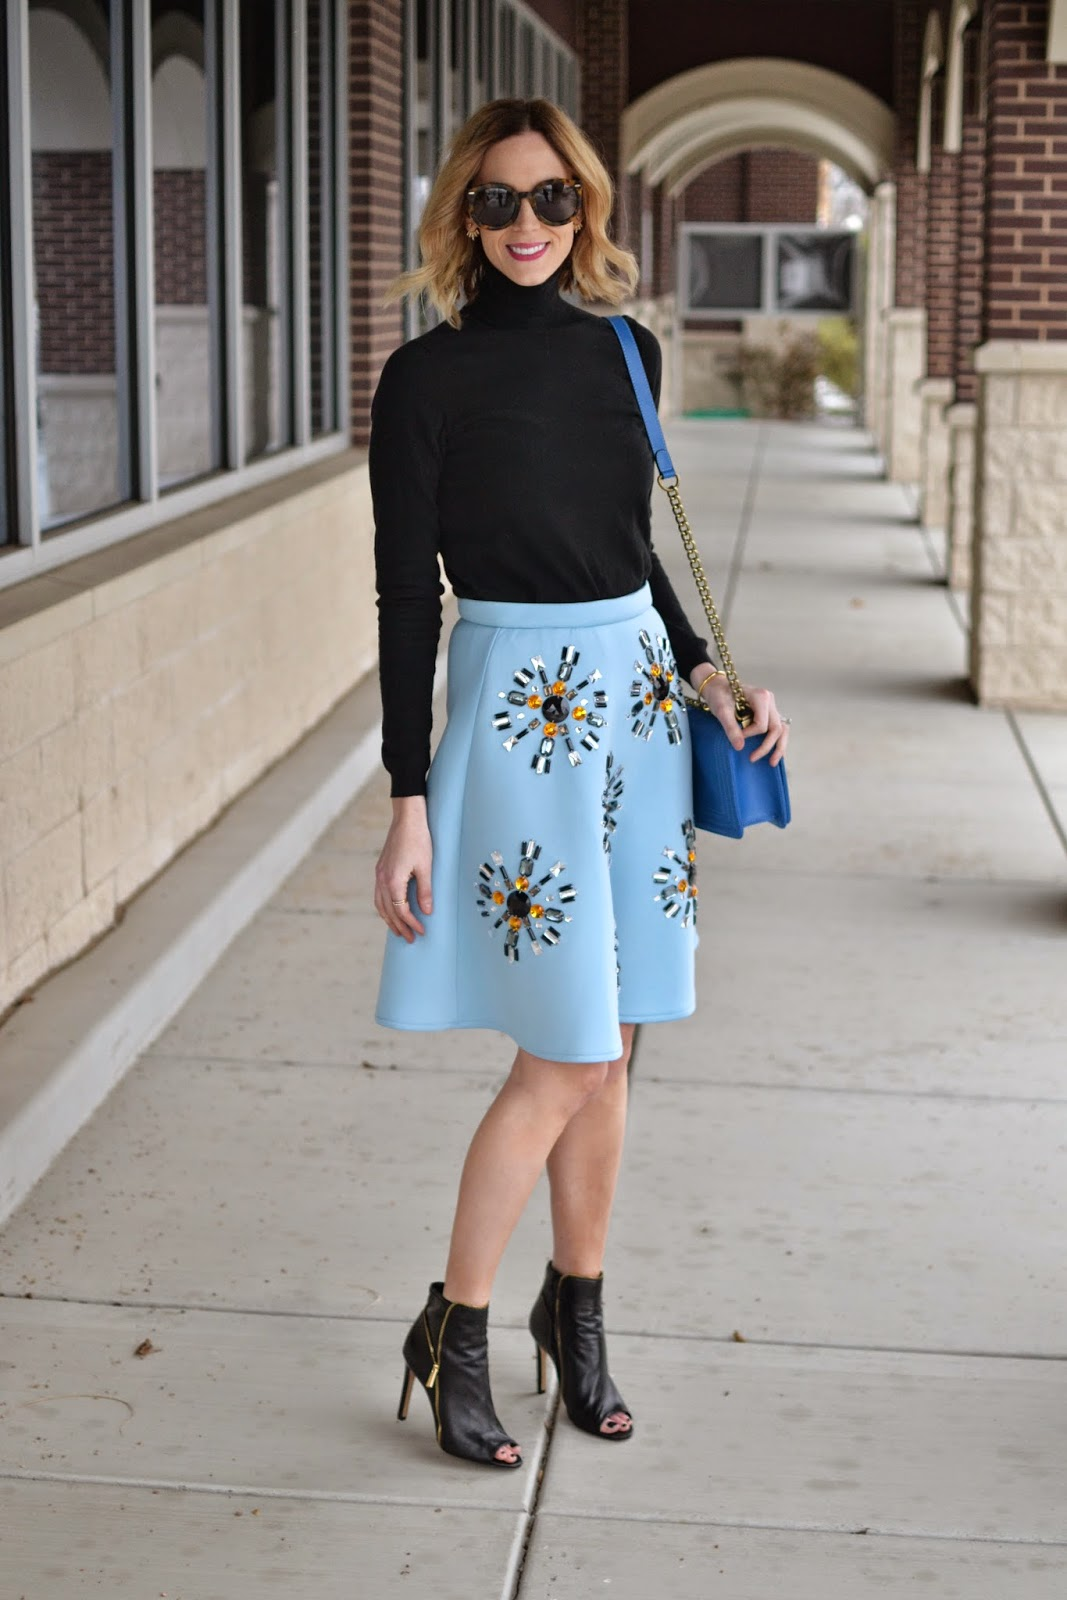 Sheinside baby blue midi skirt, black turtleneck, black booties, karen walker super duper, Honeybee jewelry